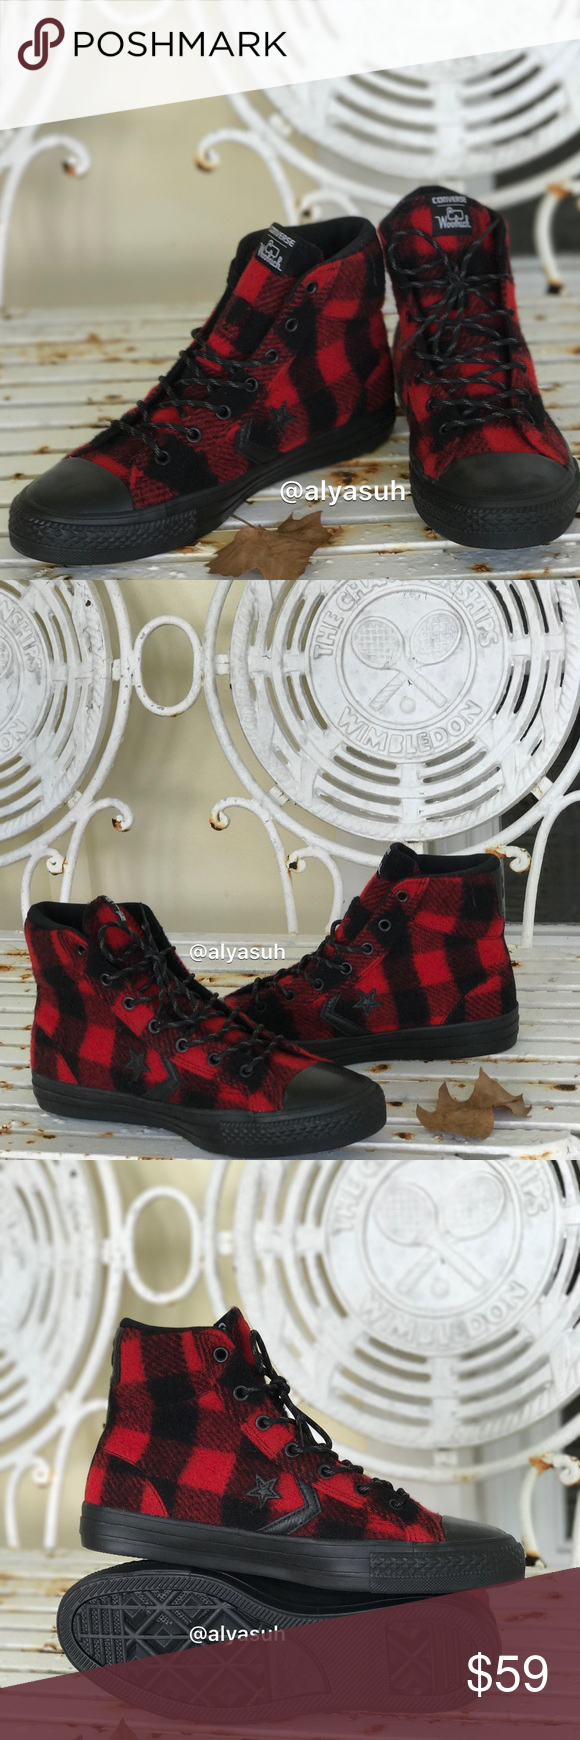 3356c8702492 Converse Woolrich Ctas Player Black Red WMNS Brand new with box. Price is  firm!